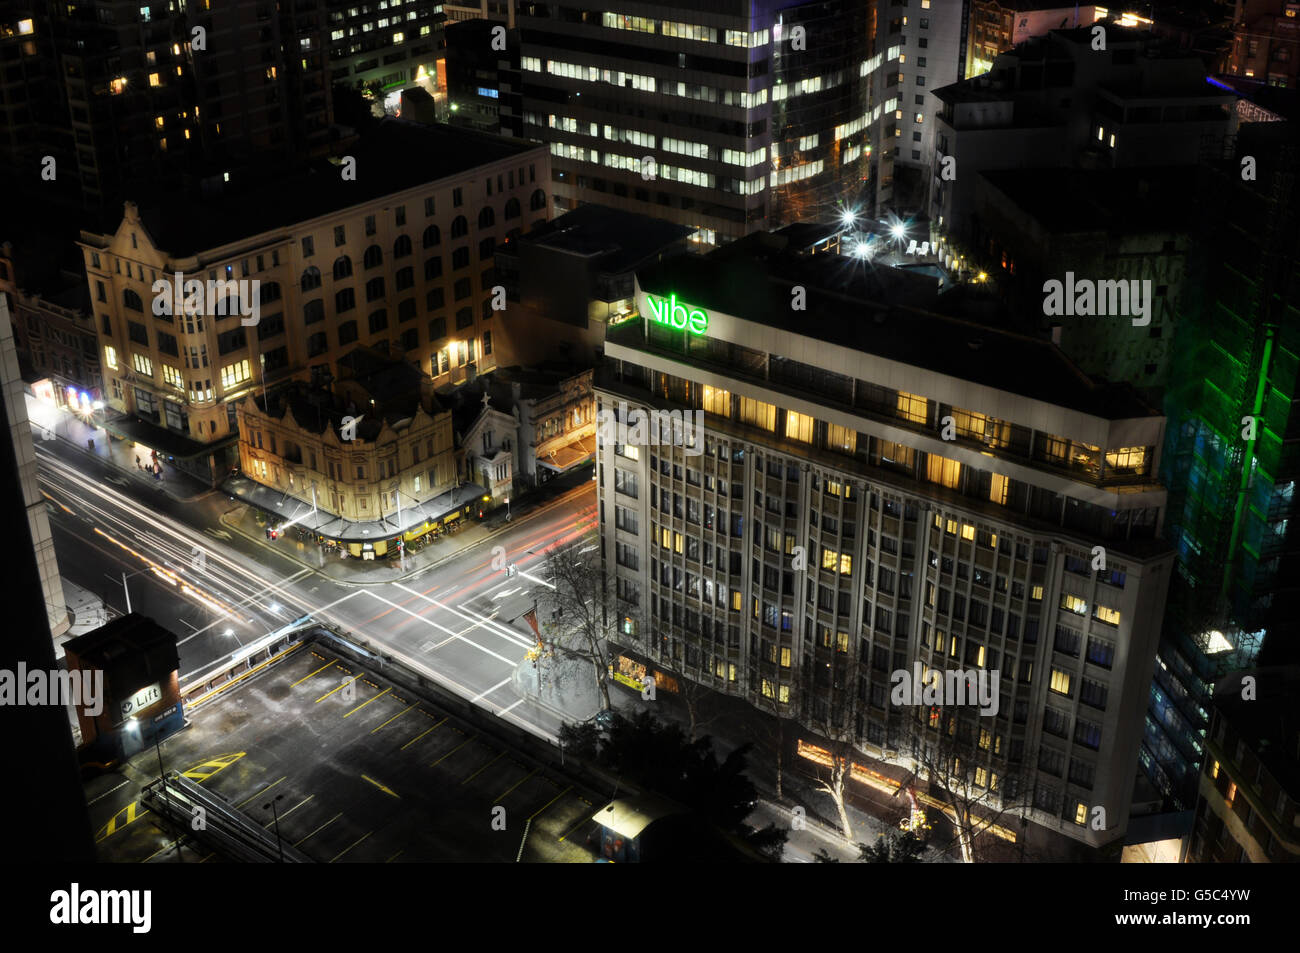 Top view of Surry Hills in Sydney Australia including Vibe Hotel at night time - Stock Image